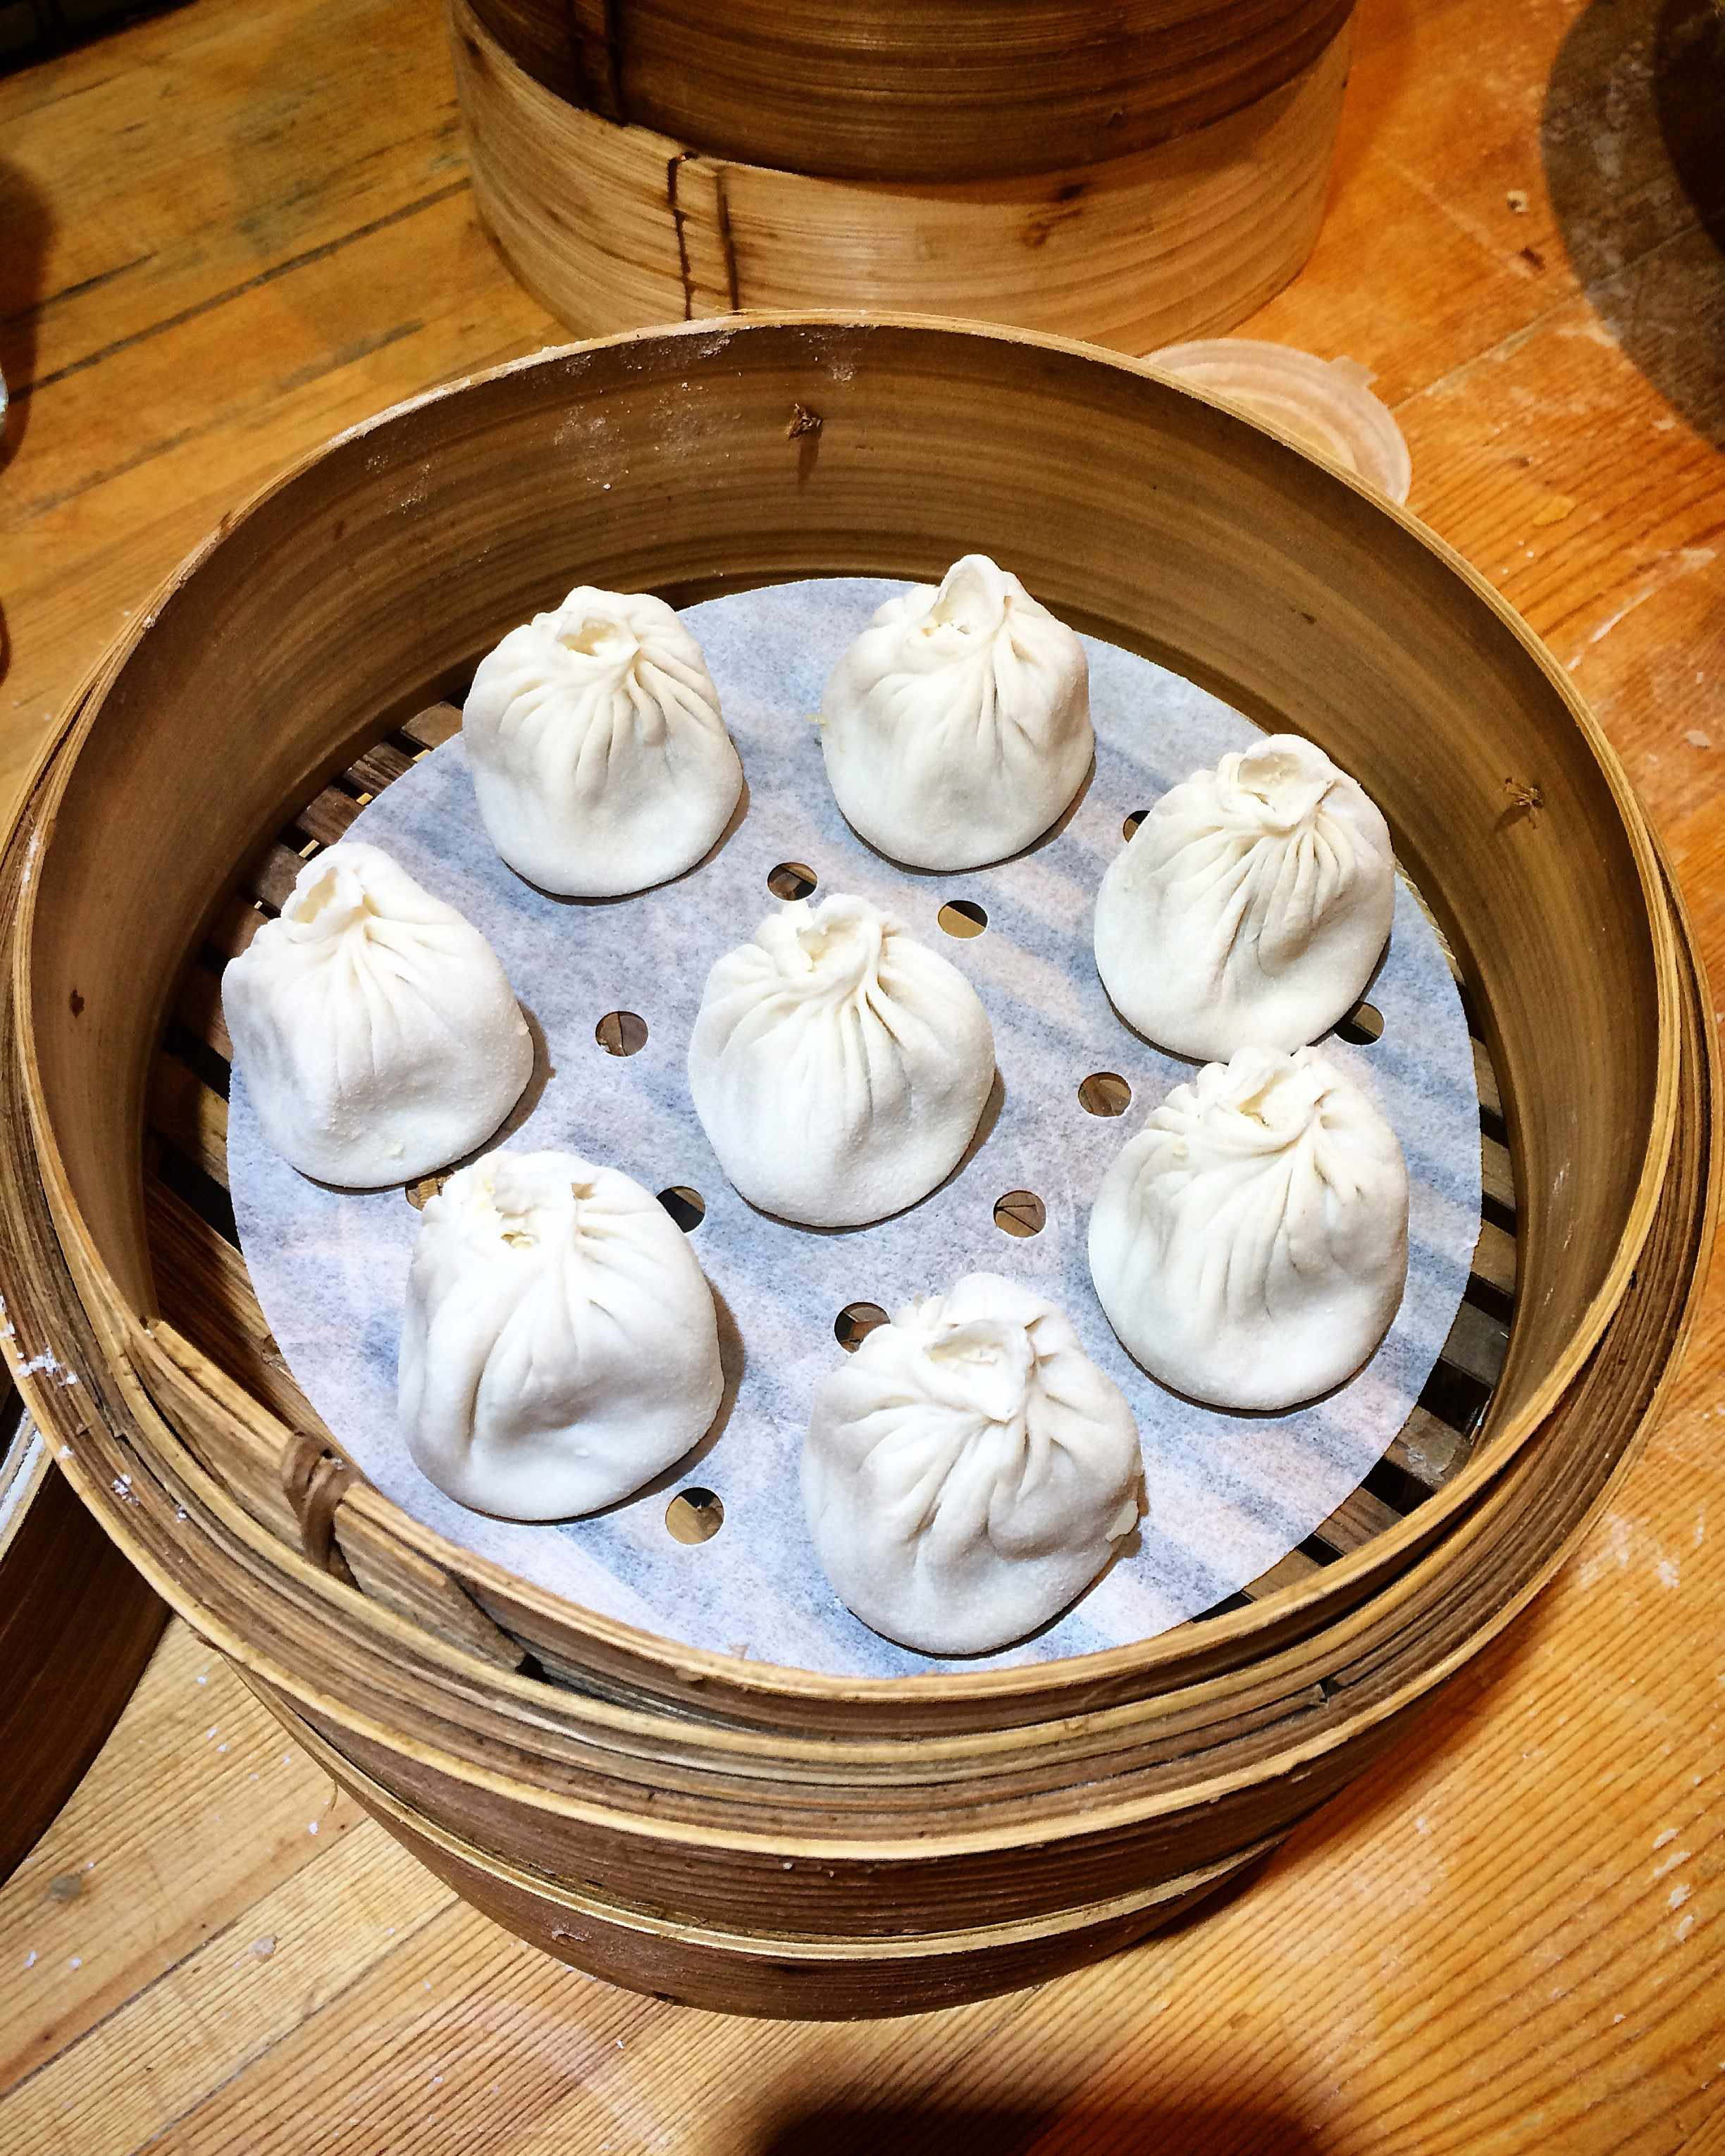 Dumplings in Chinatown